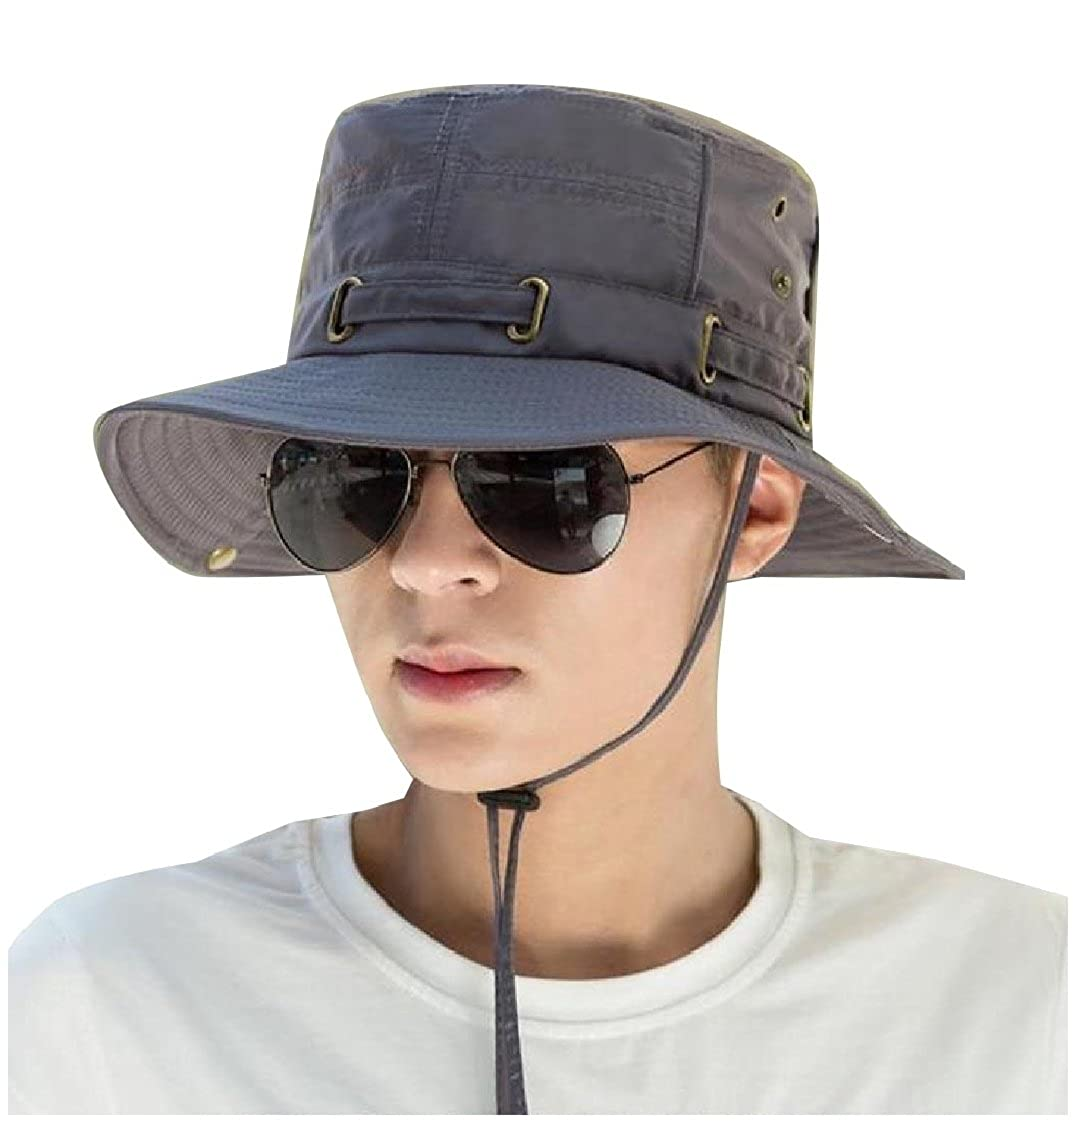 2d0f53f236558 Amazon.com  Coolred-Men Simple Outdoor Bush Hat Pure Color Chin Straps Sun  Hats Army Green OS  Clothing